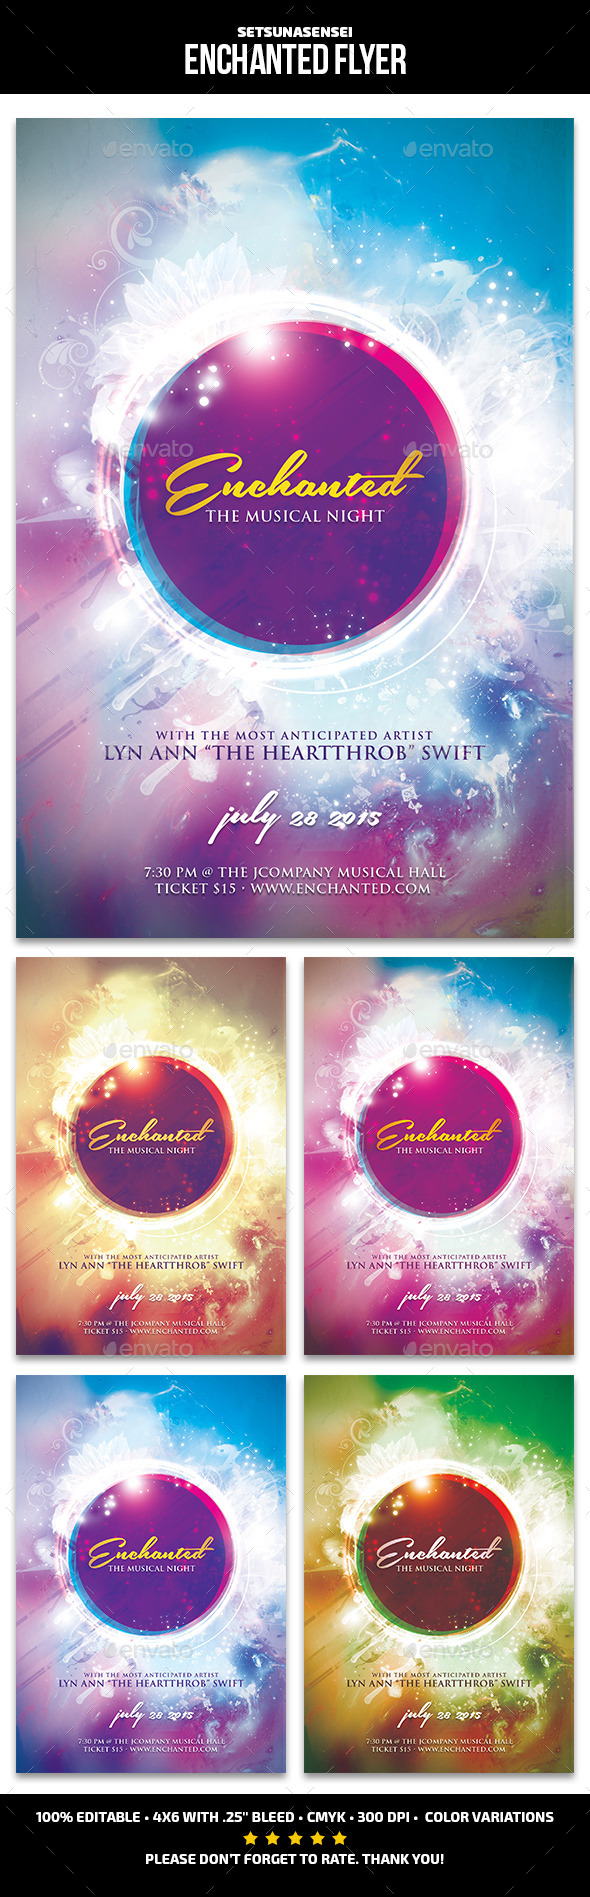 GraphicRiver Enchanted Flyer 11865138